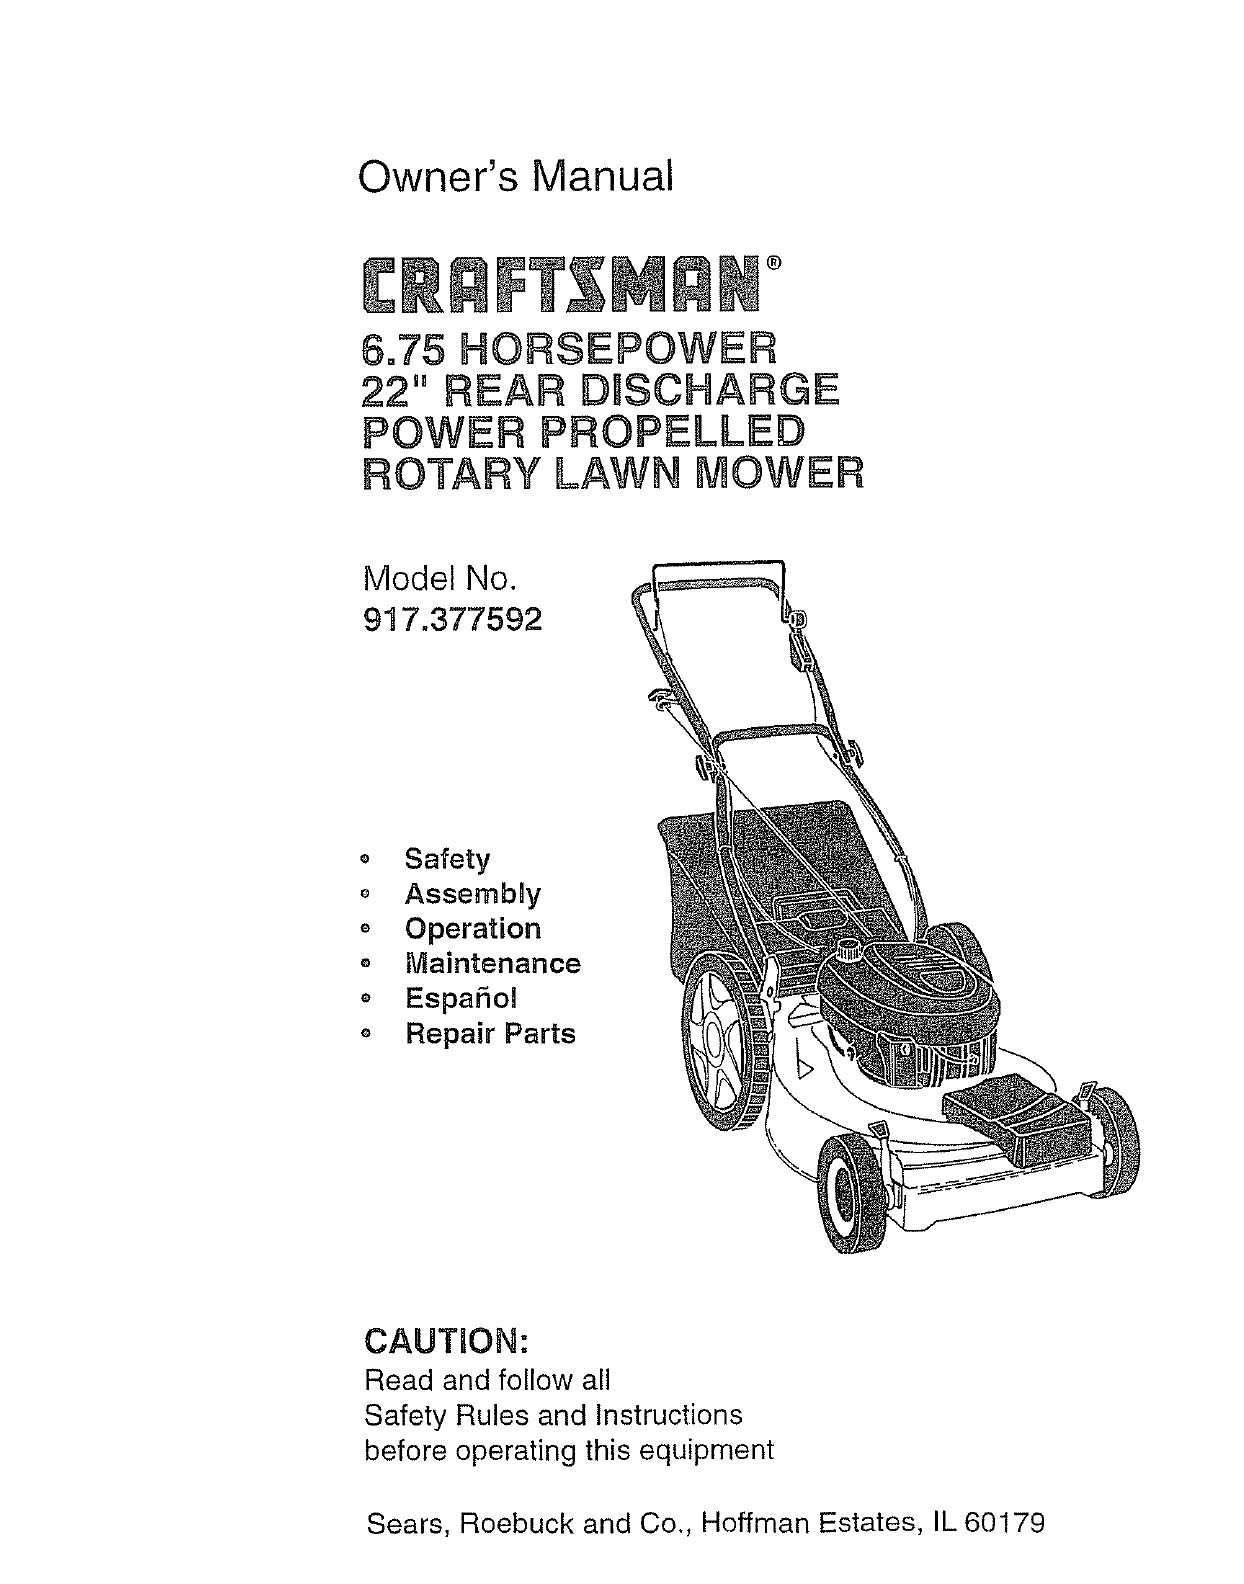 craftsman lawn mower 917 377592 user guide manualsonline com rh phone manualsonline com Craftsman Instruction Manual Craftsman Instruction Manual